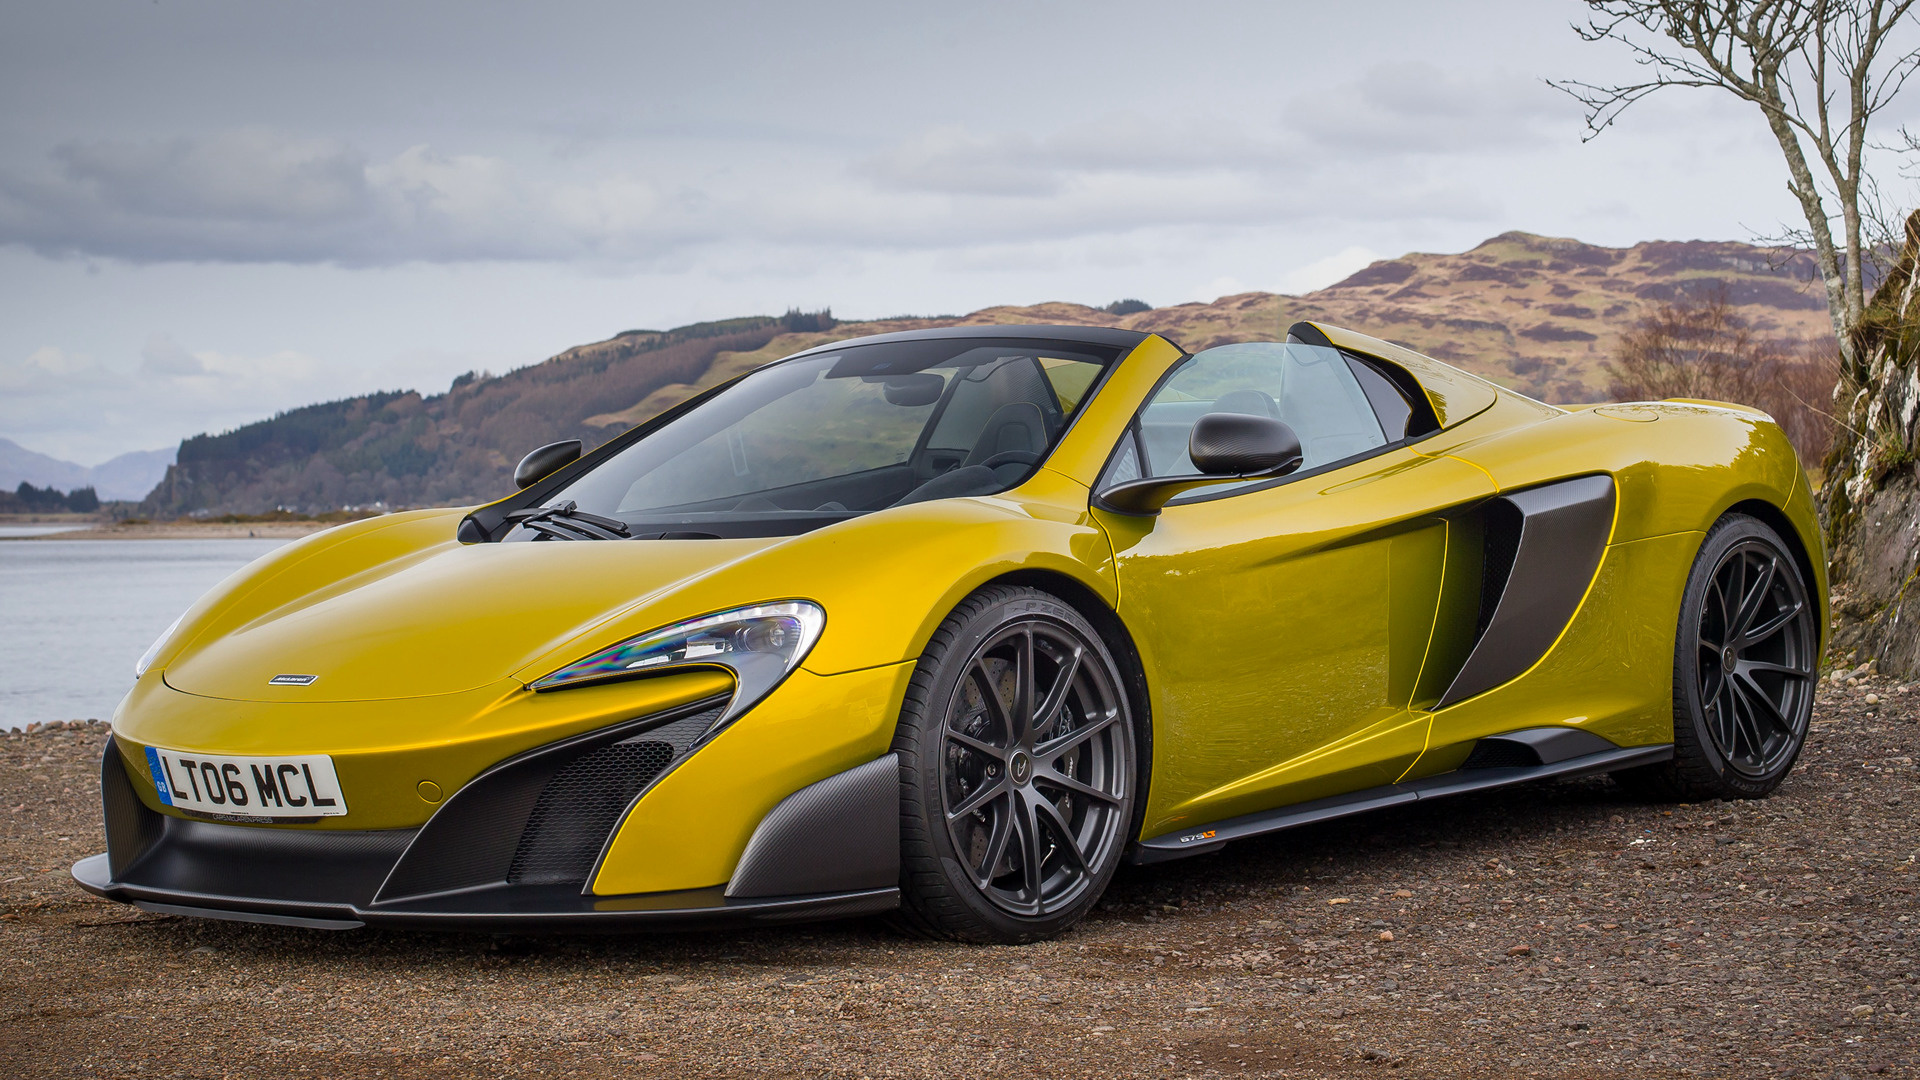 Toyota Of Orange >> 2016 McLaren 675LT Spider - Wallpapers and HD Images | Car ...